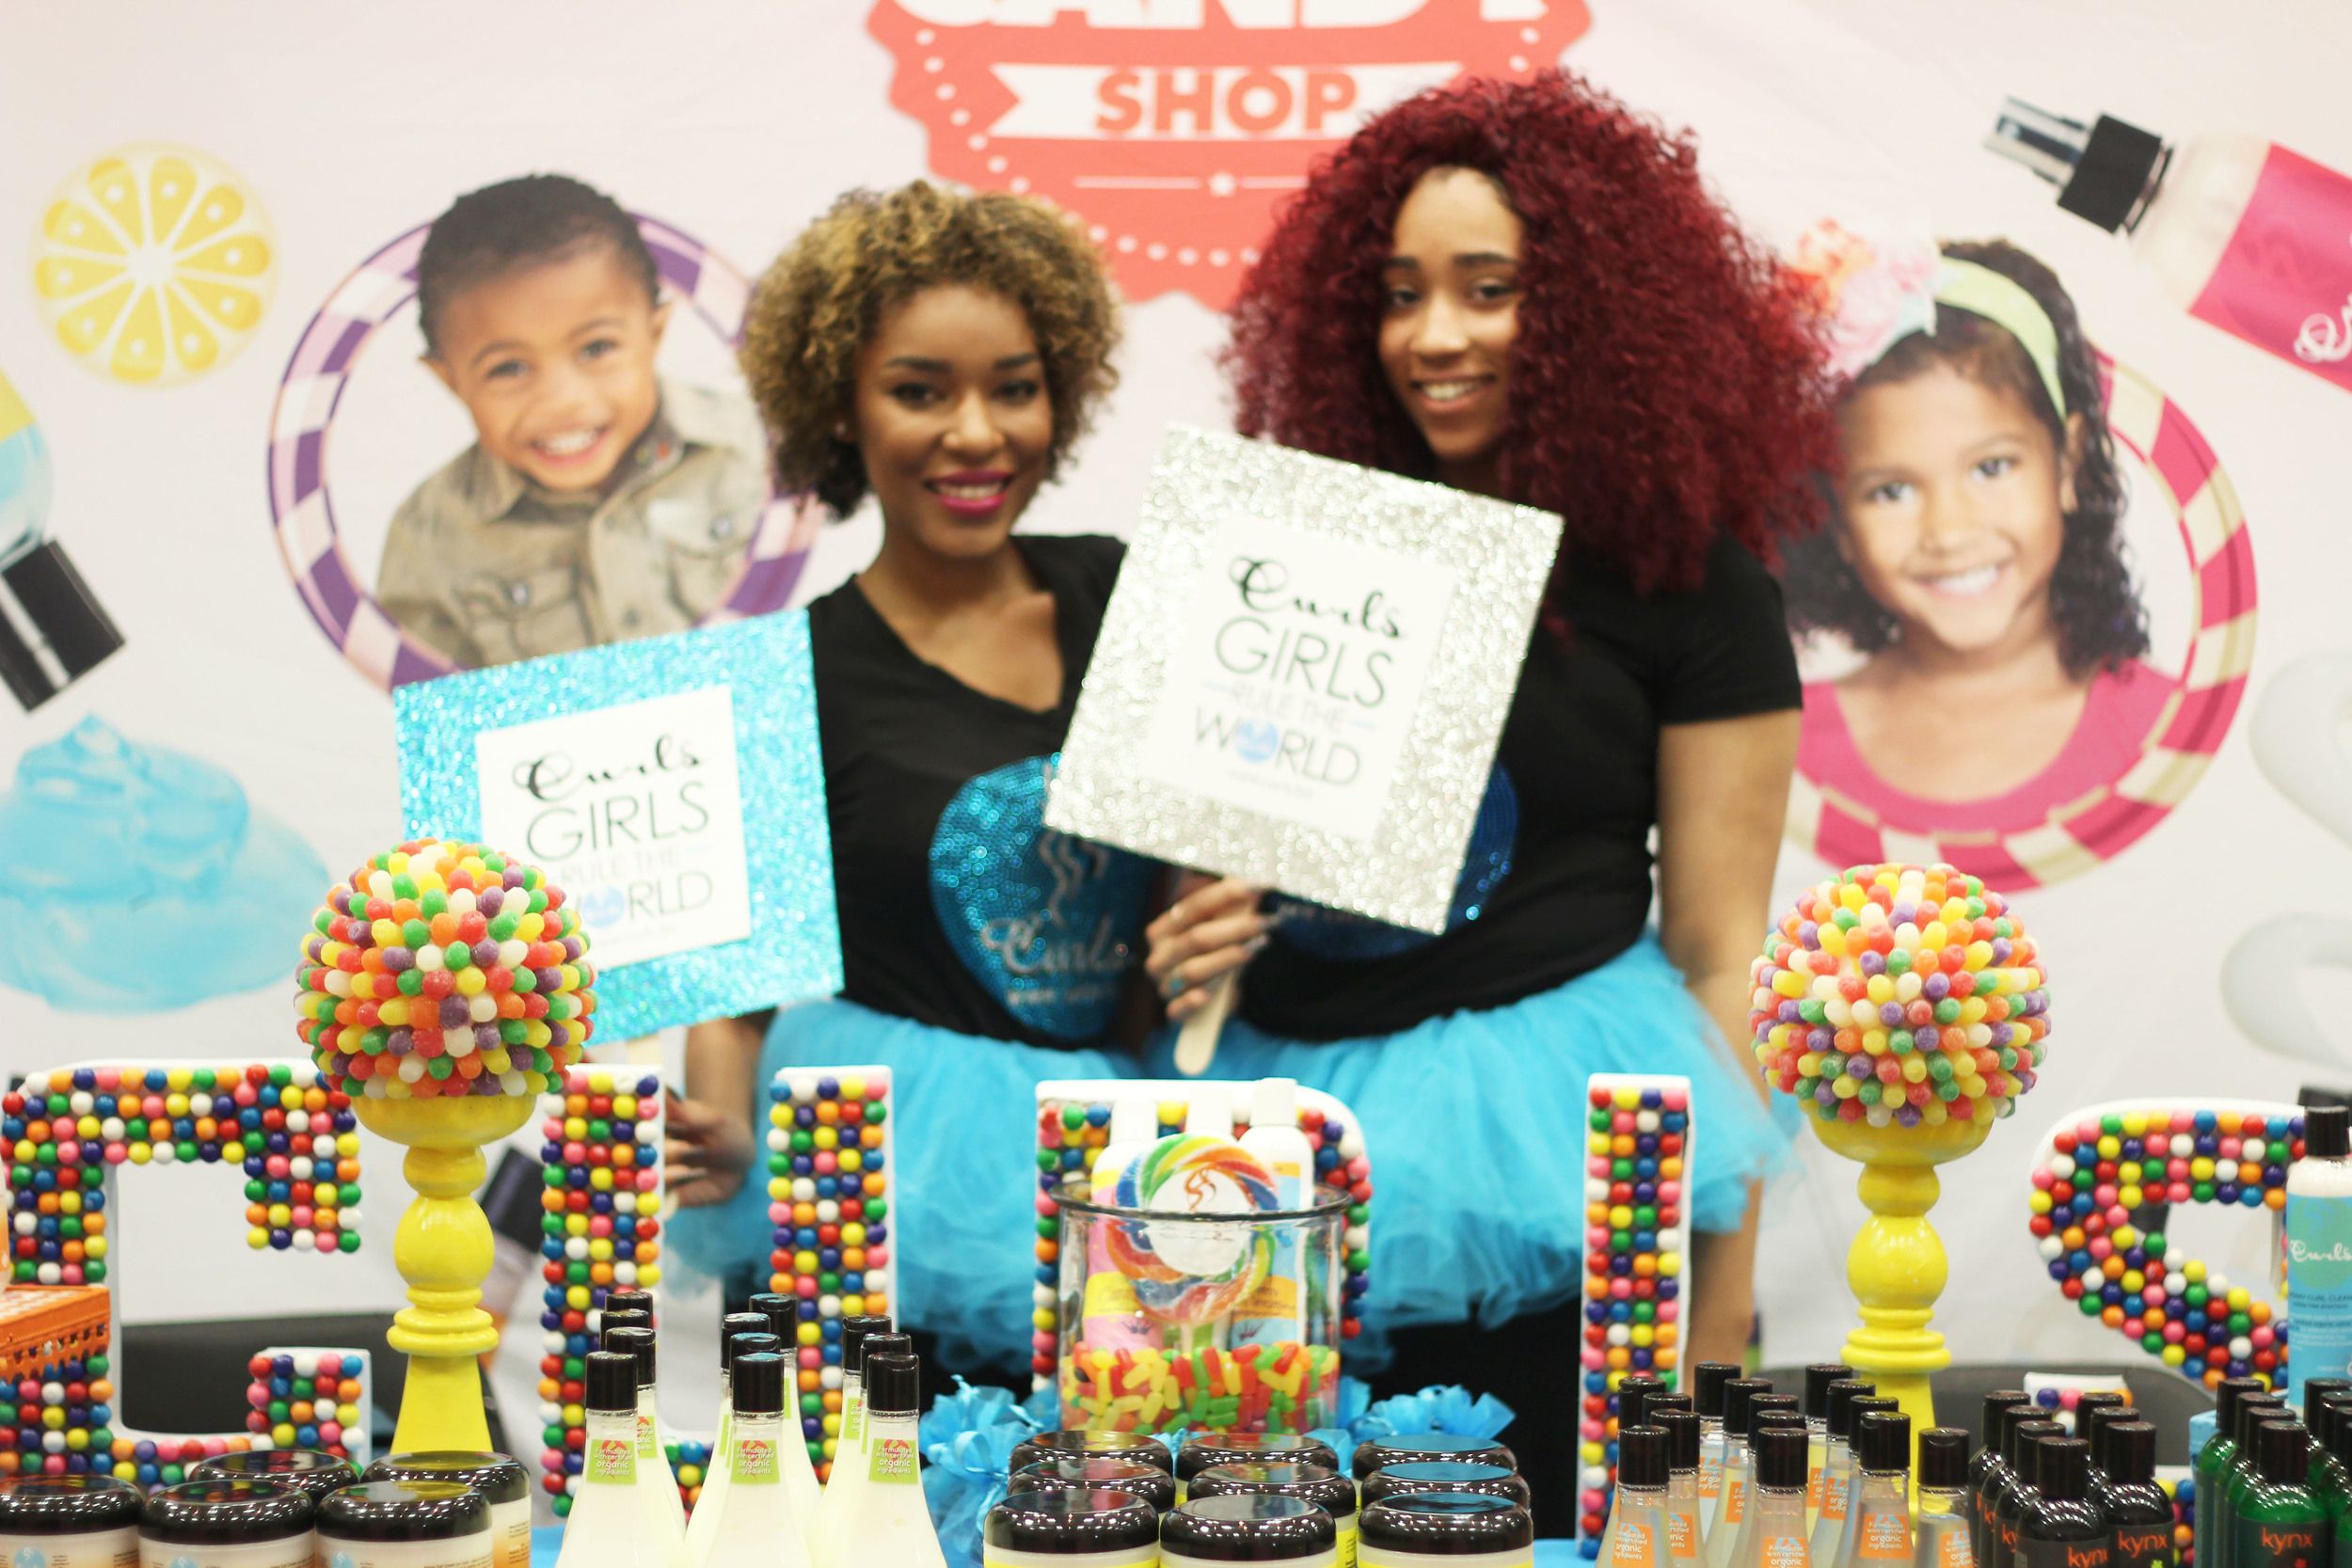 Curls had one of the cutest booths! All of their products smell so yummy, so the candy theme was very fitting.